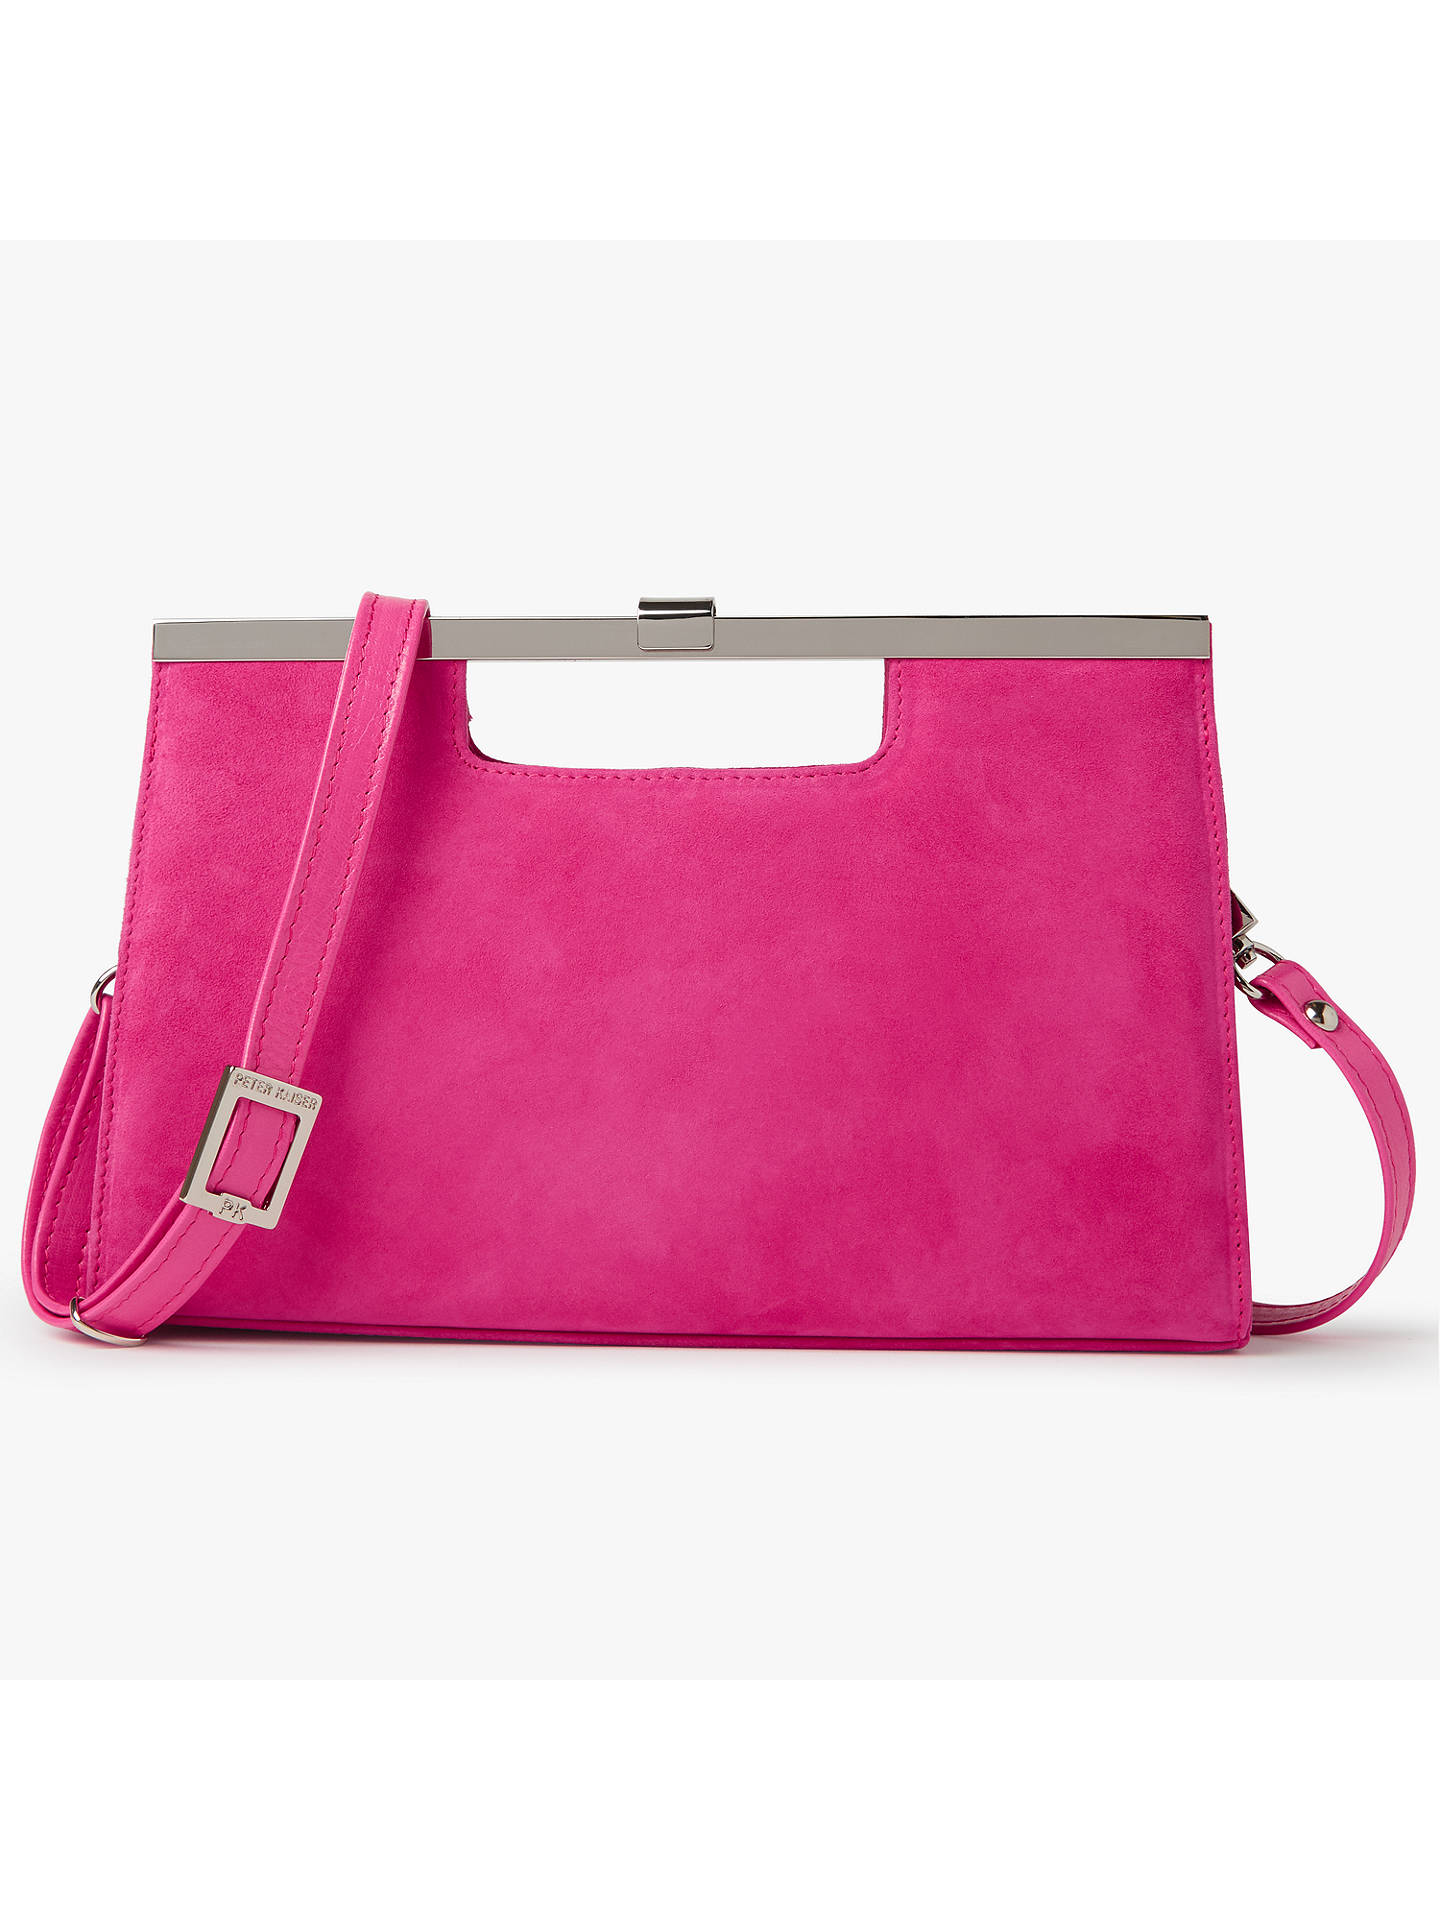 Peter Kaiser Wye Clutch Bag Berry Suede Online At Johnlewis